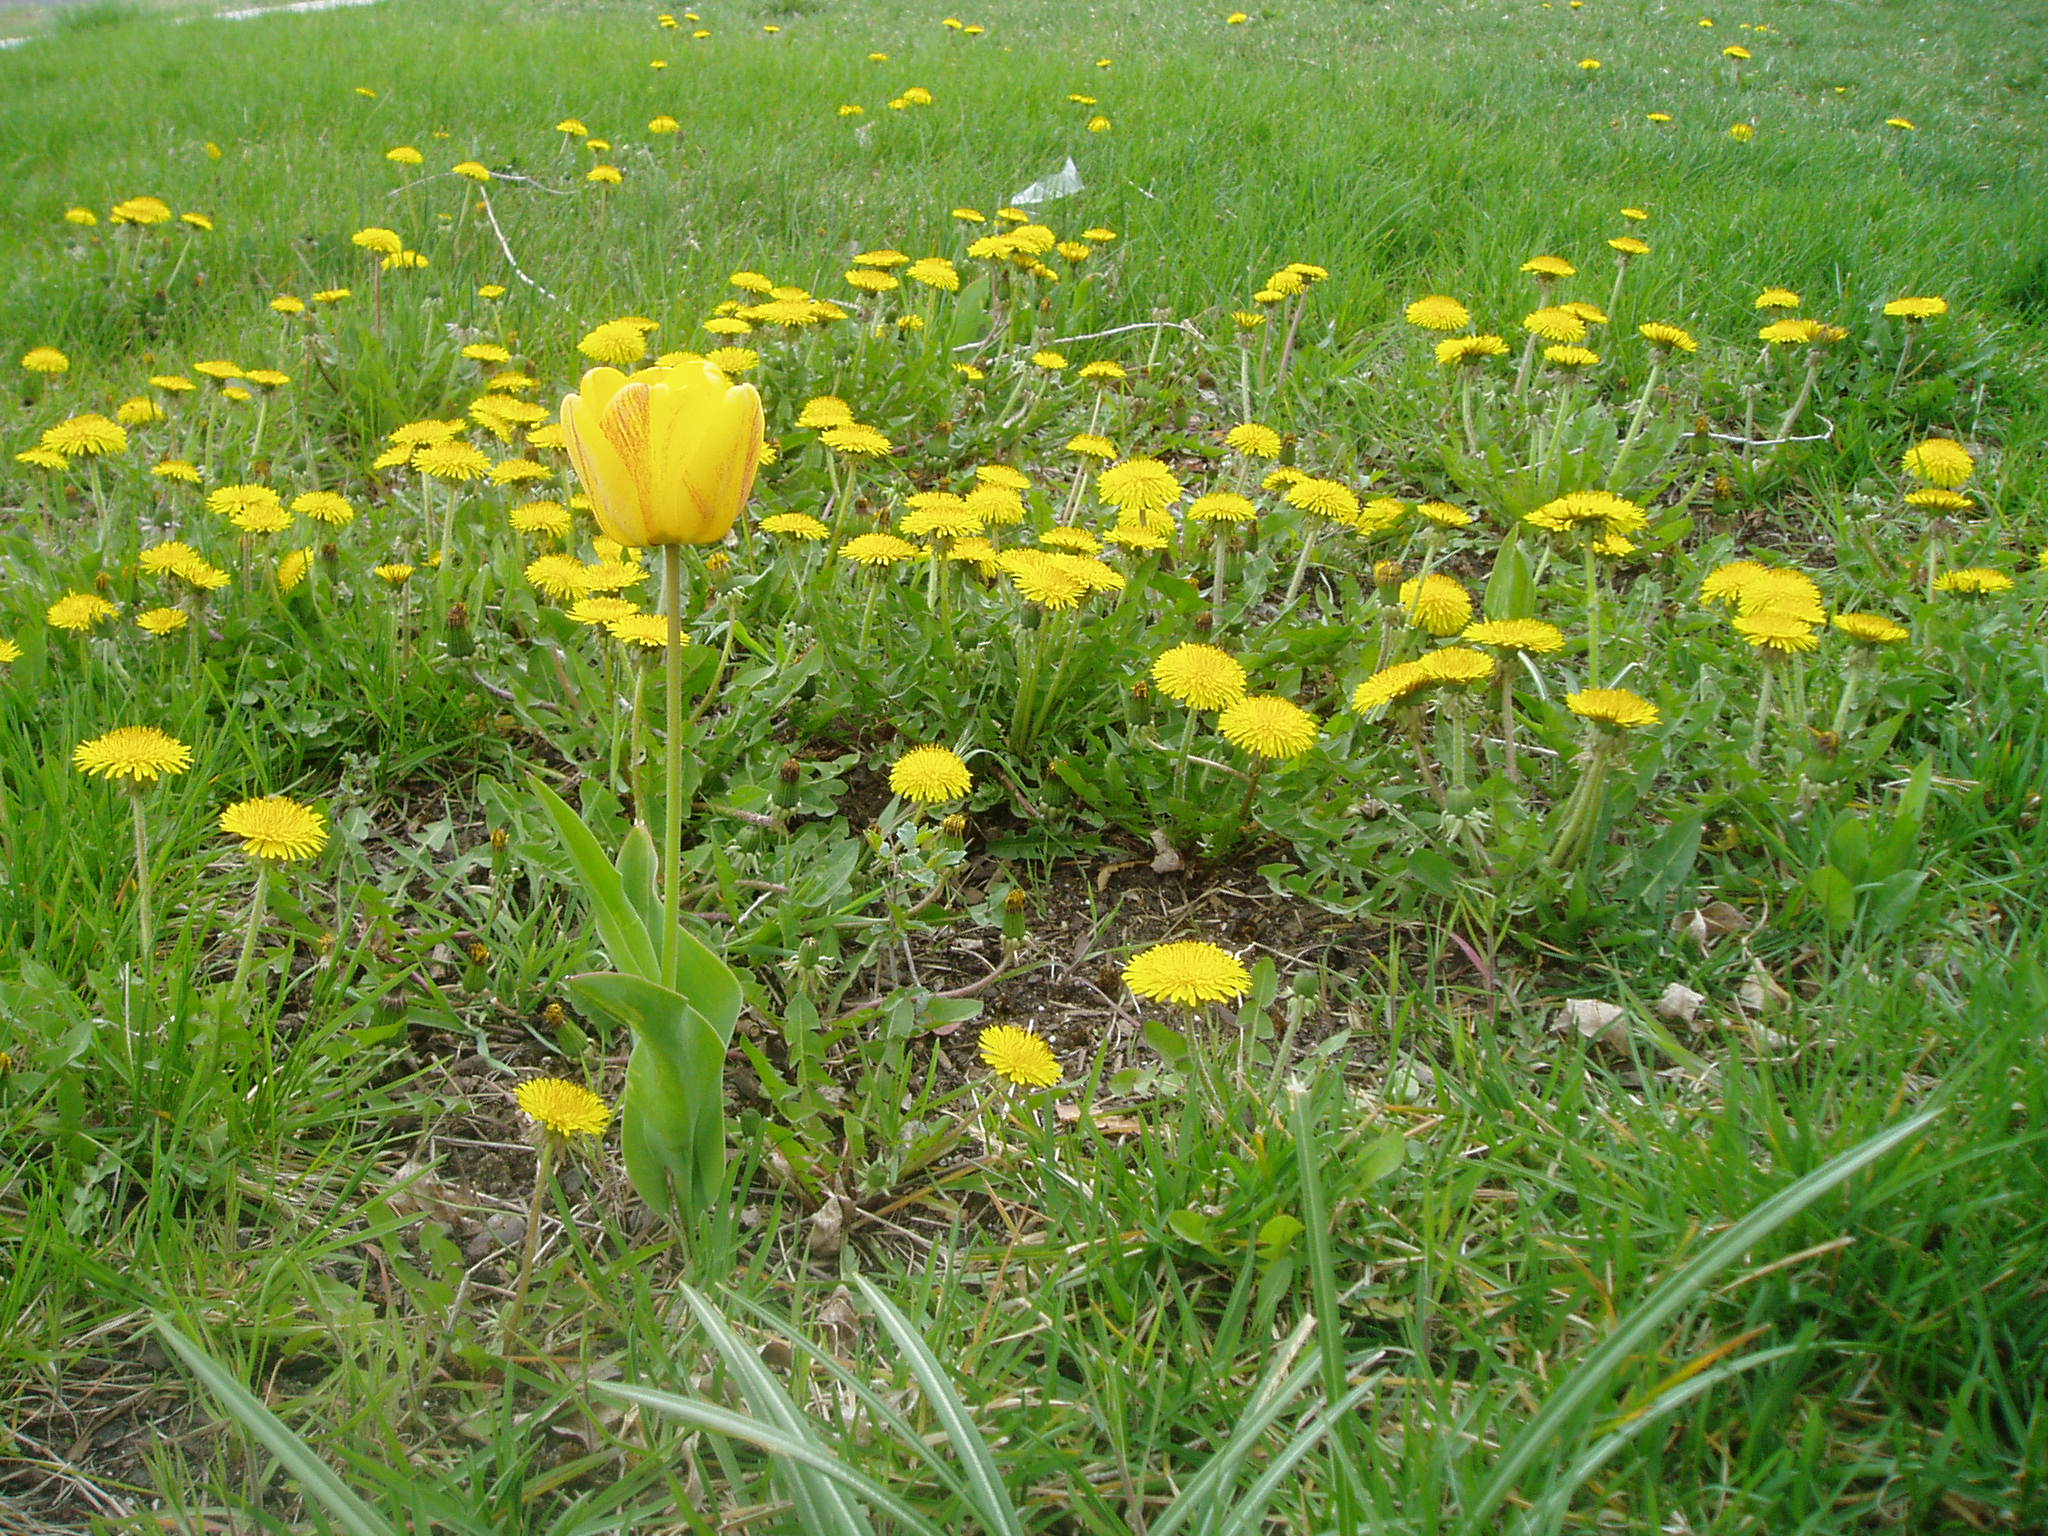 Yellow tulip surrounded by dandelions.